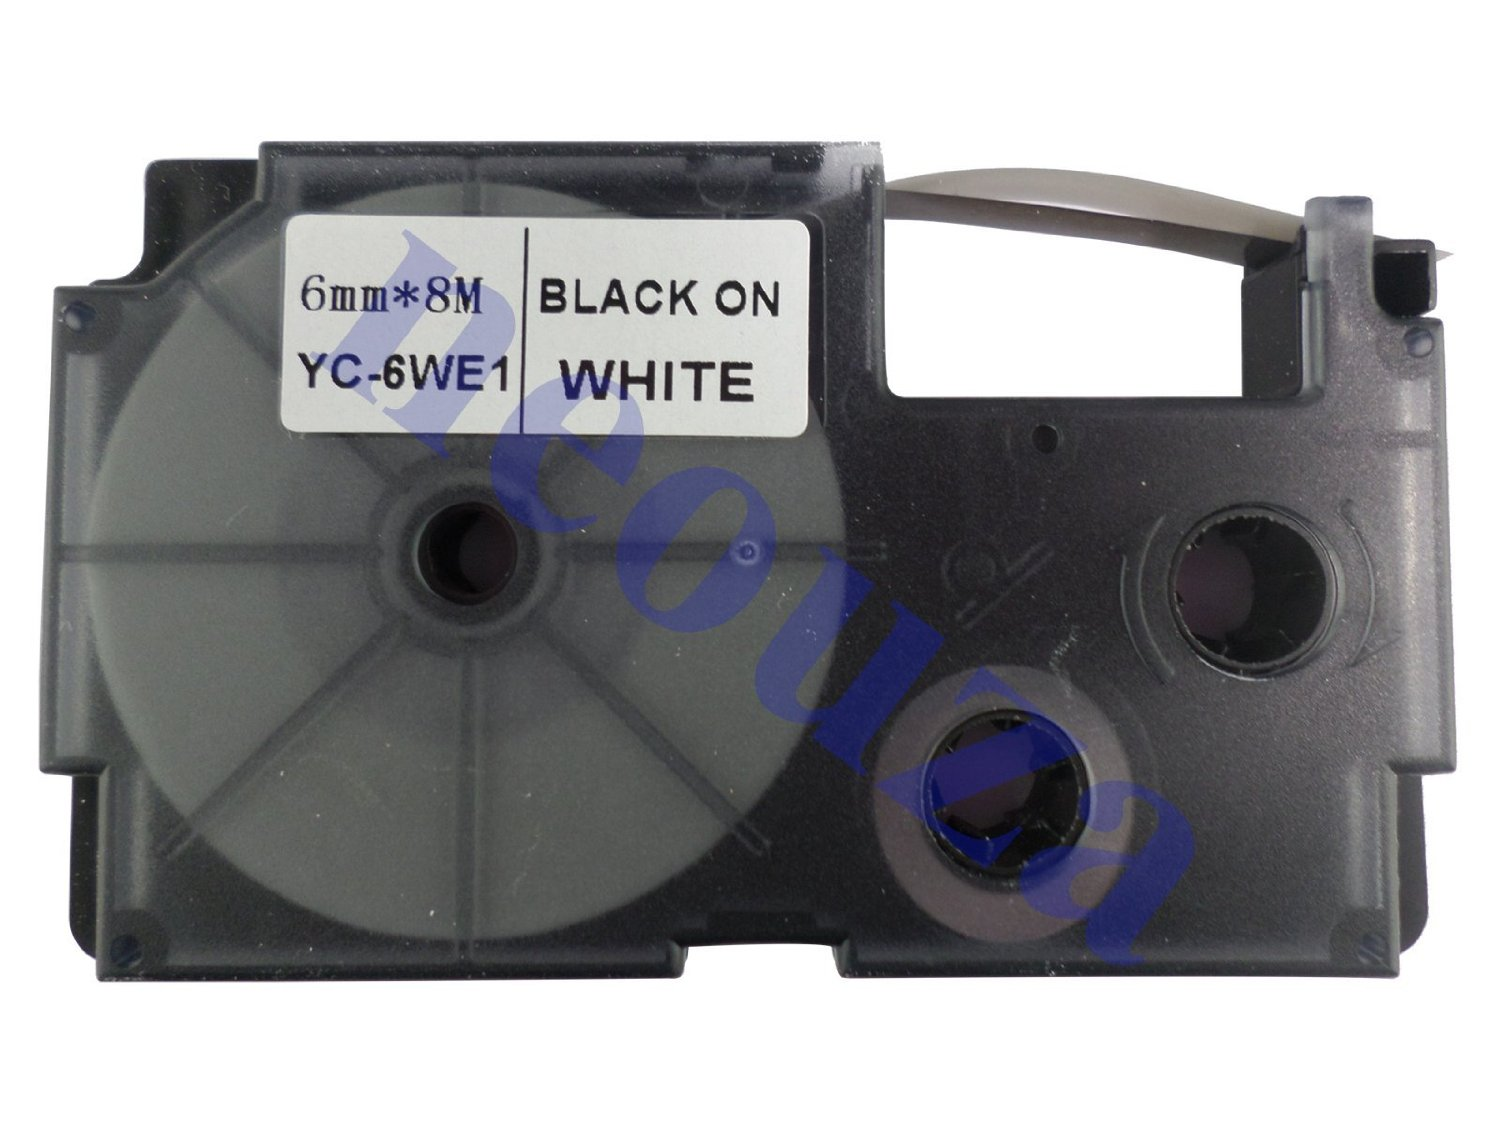 Compatible for Casio EZ-Label Tape 6mm Black on White XR-6WE1 8m LABEL IT!